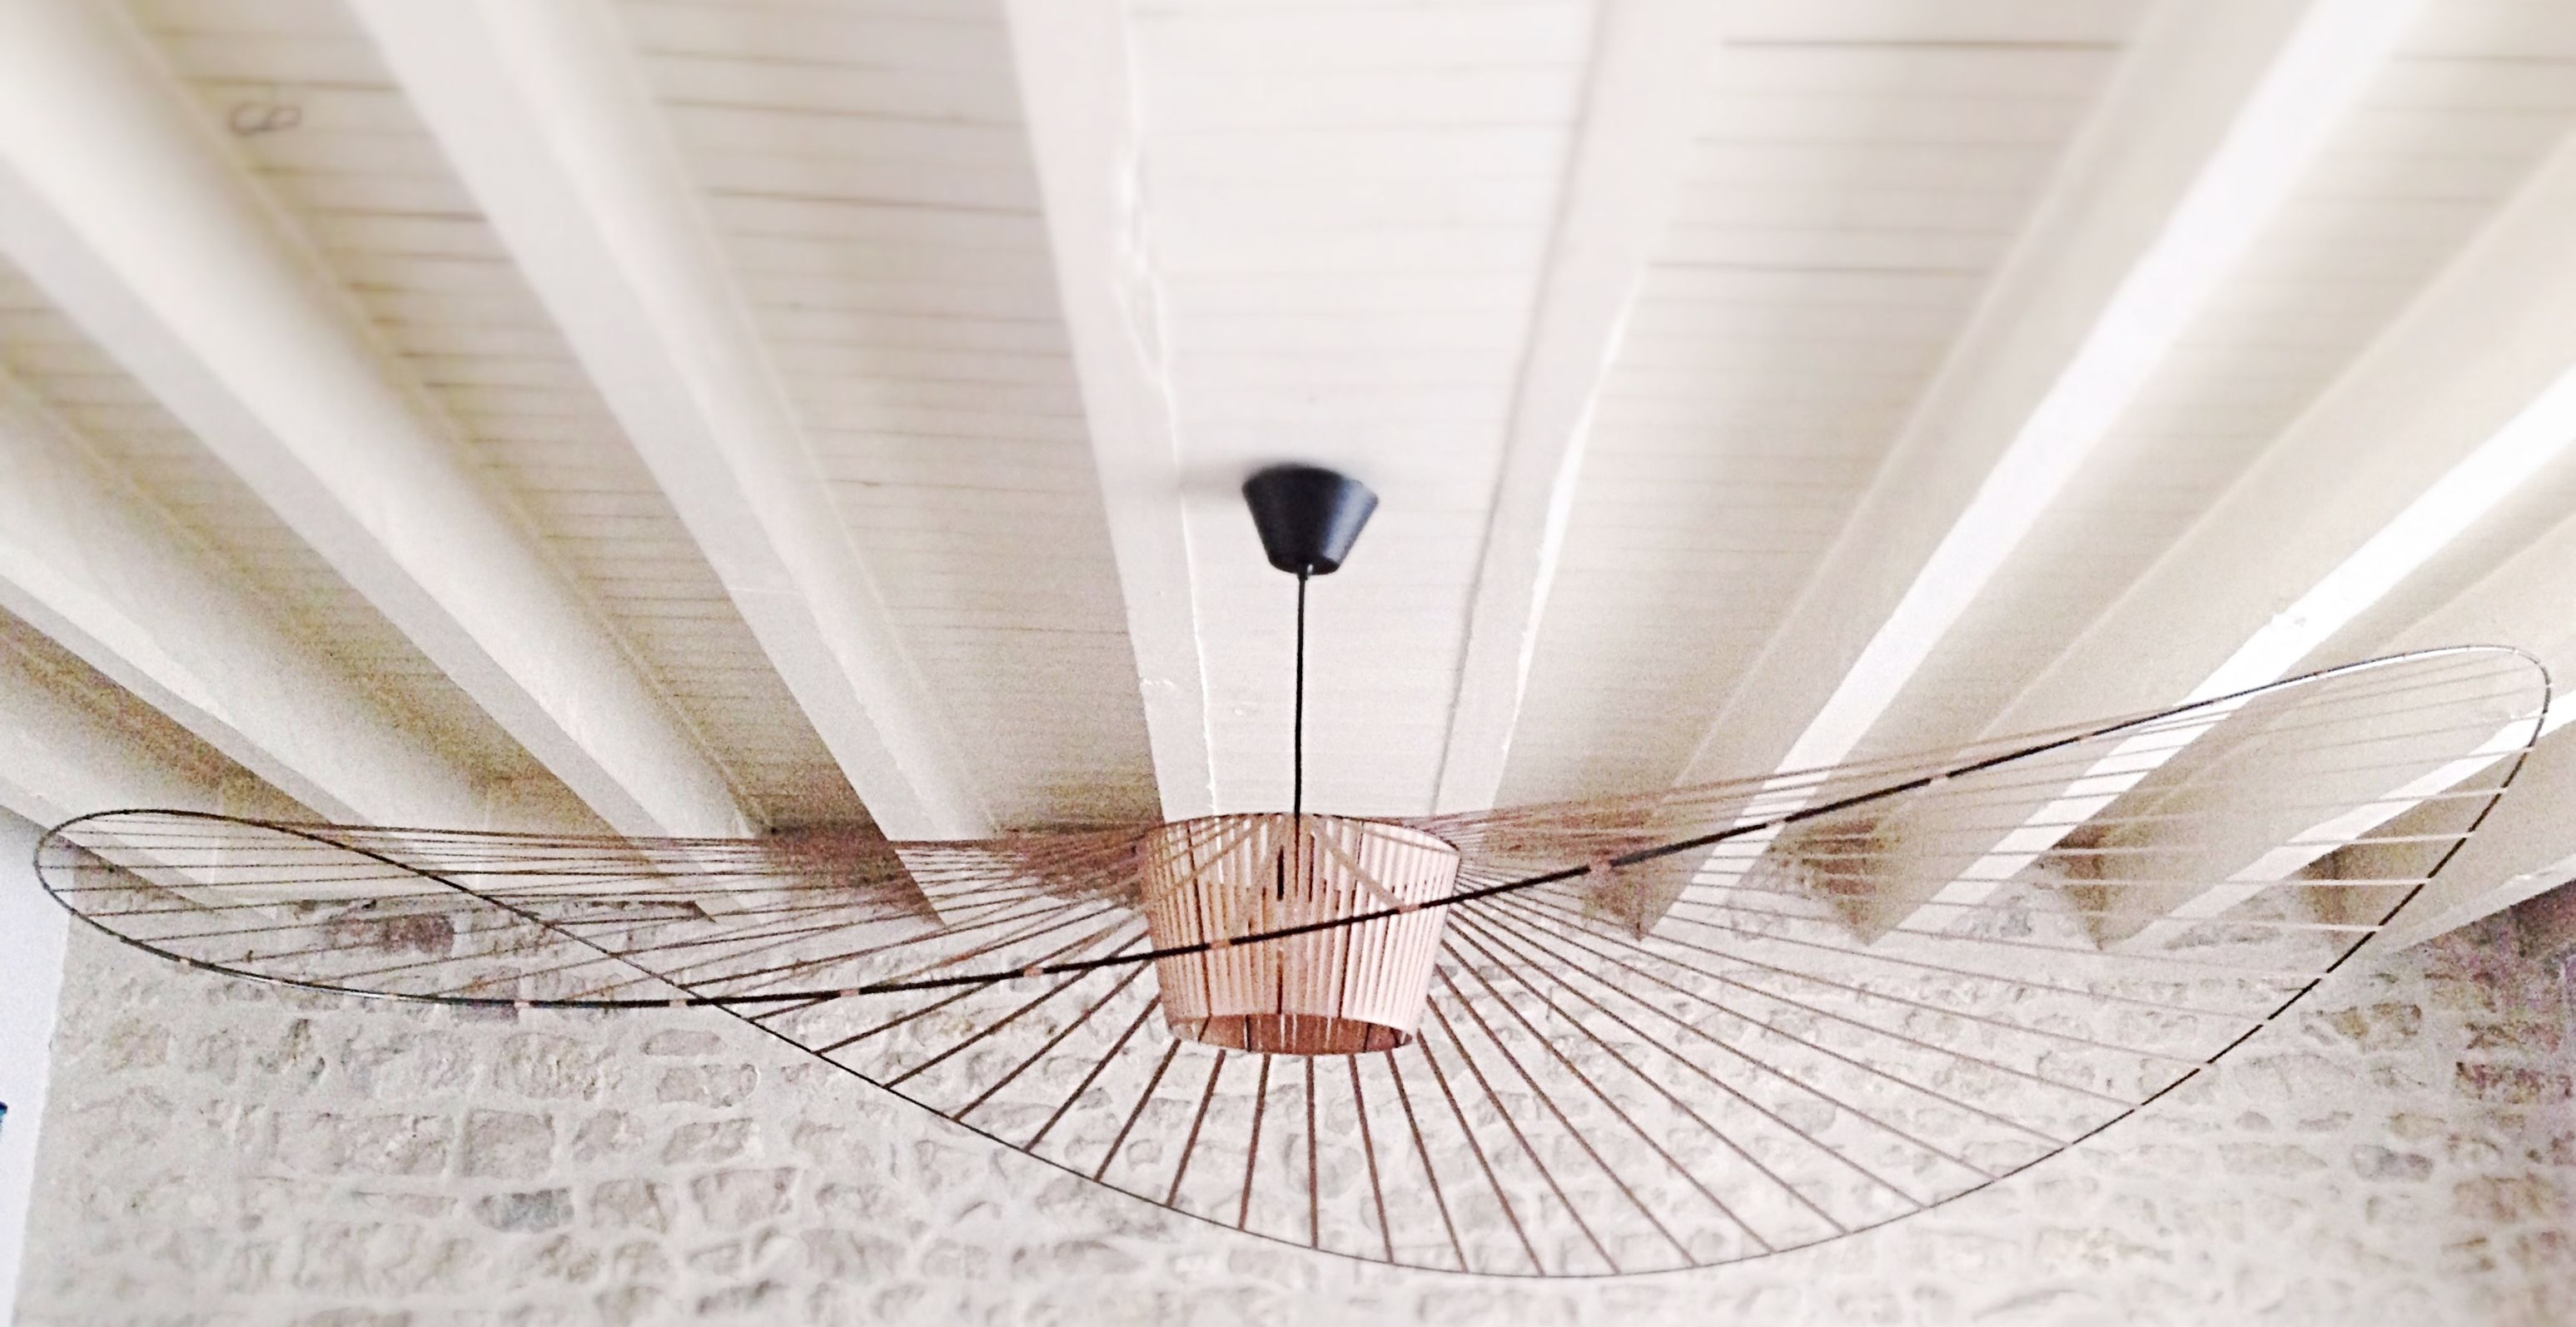 Suspension Friture Suspension Vertigo Petite Friture Salons Pinterest